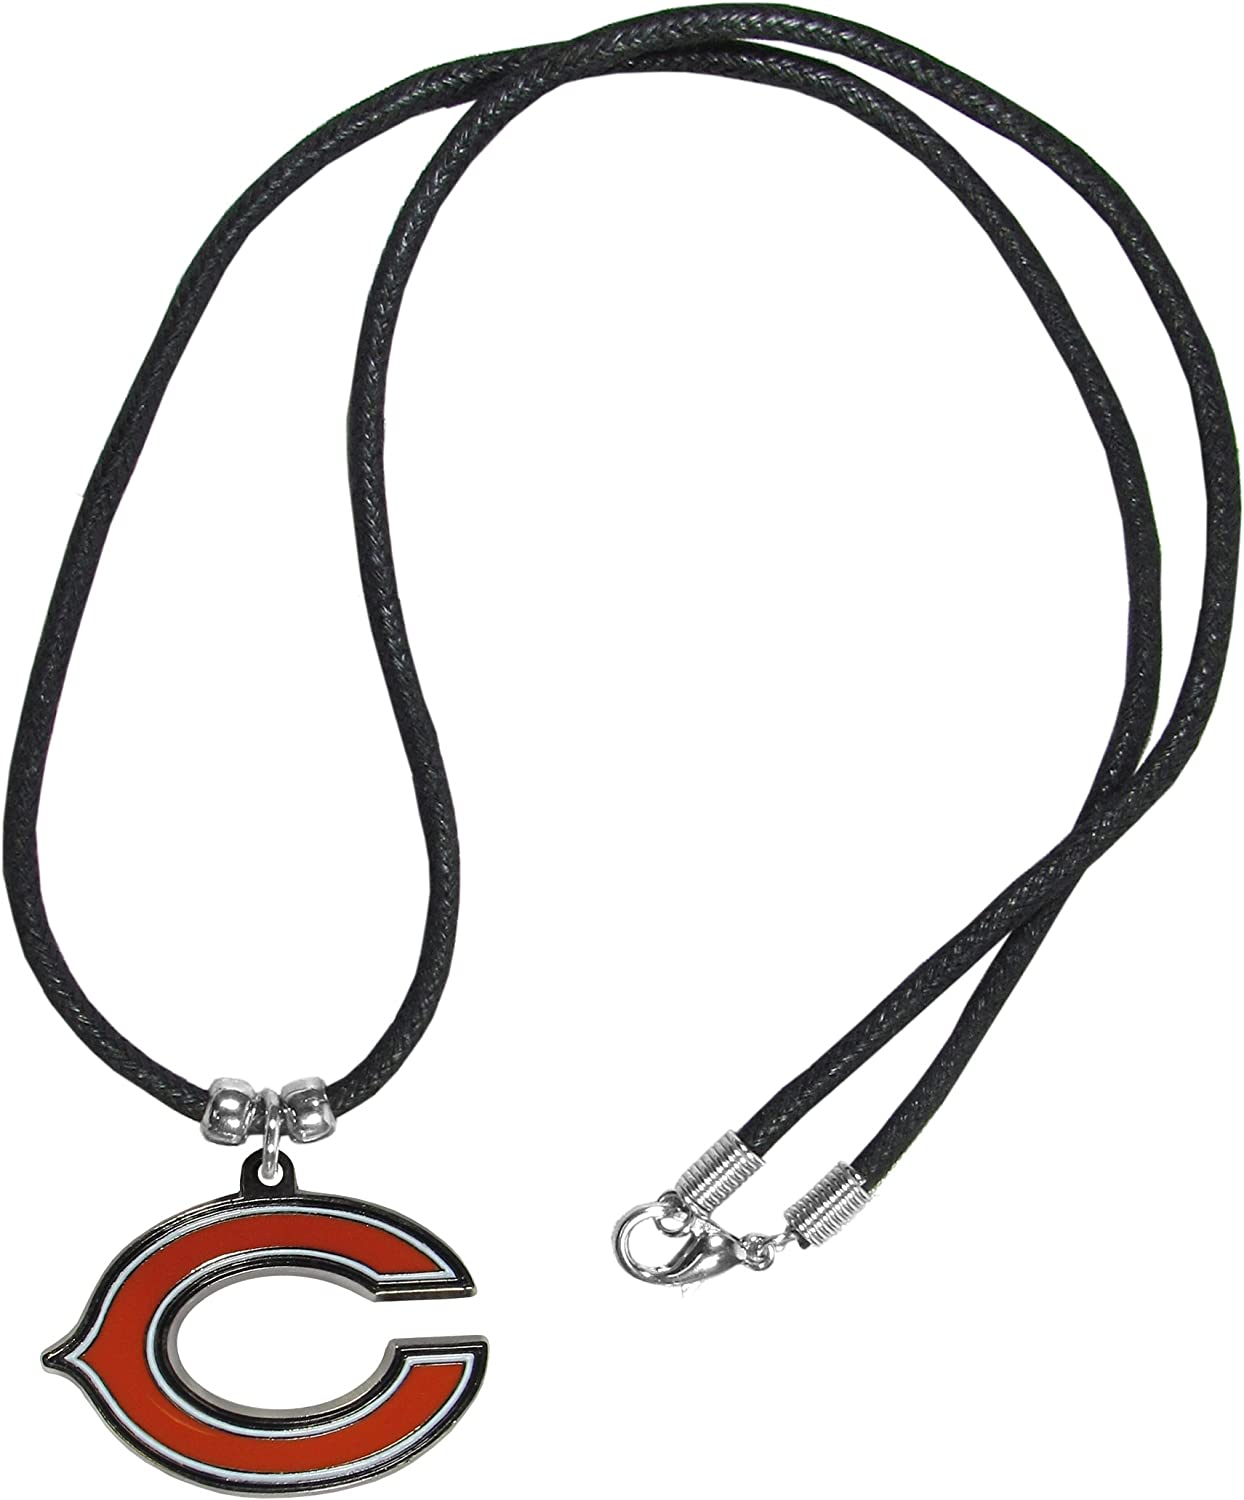 Siskiyou NFL Womens Cord Necklace